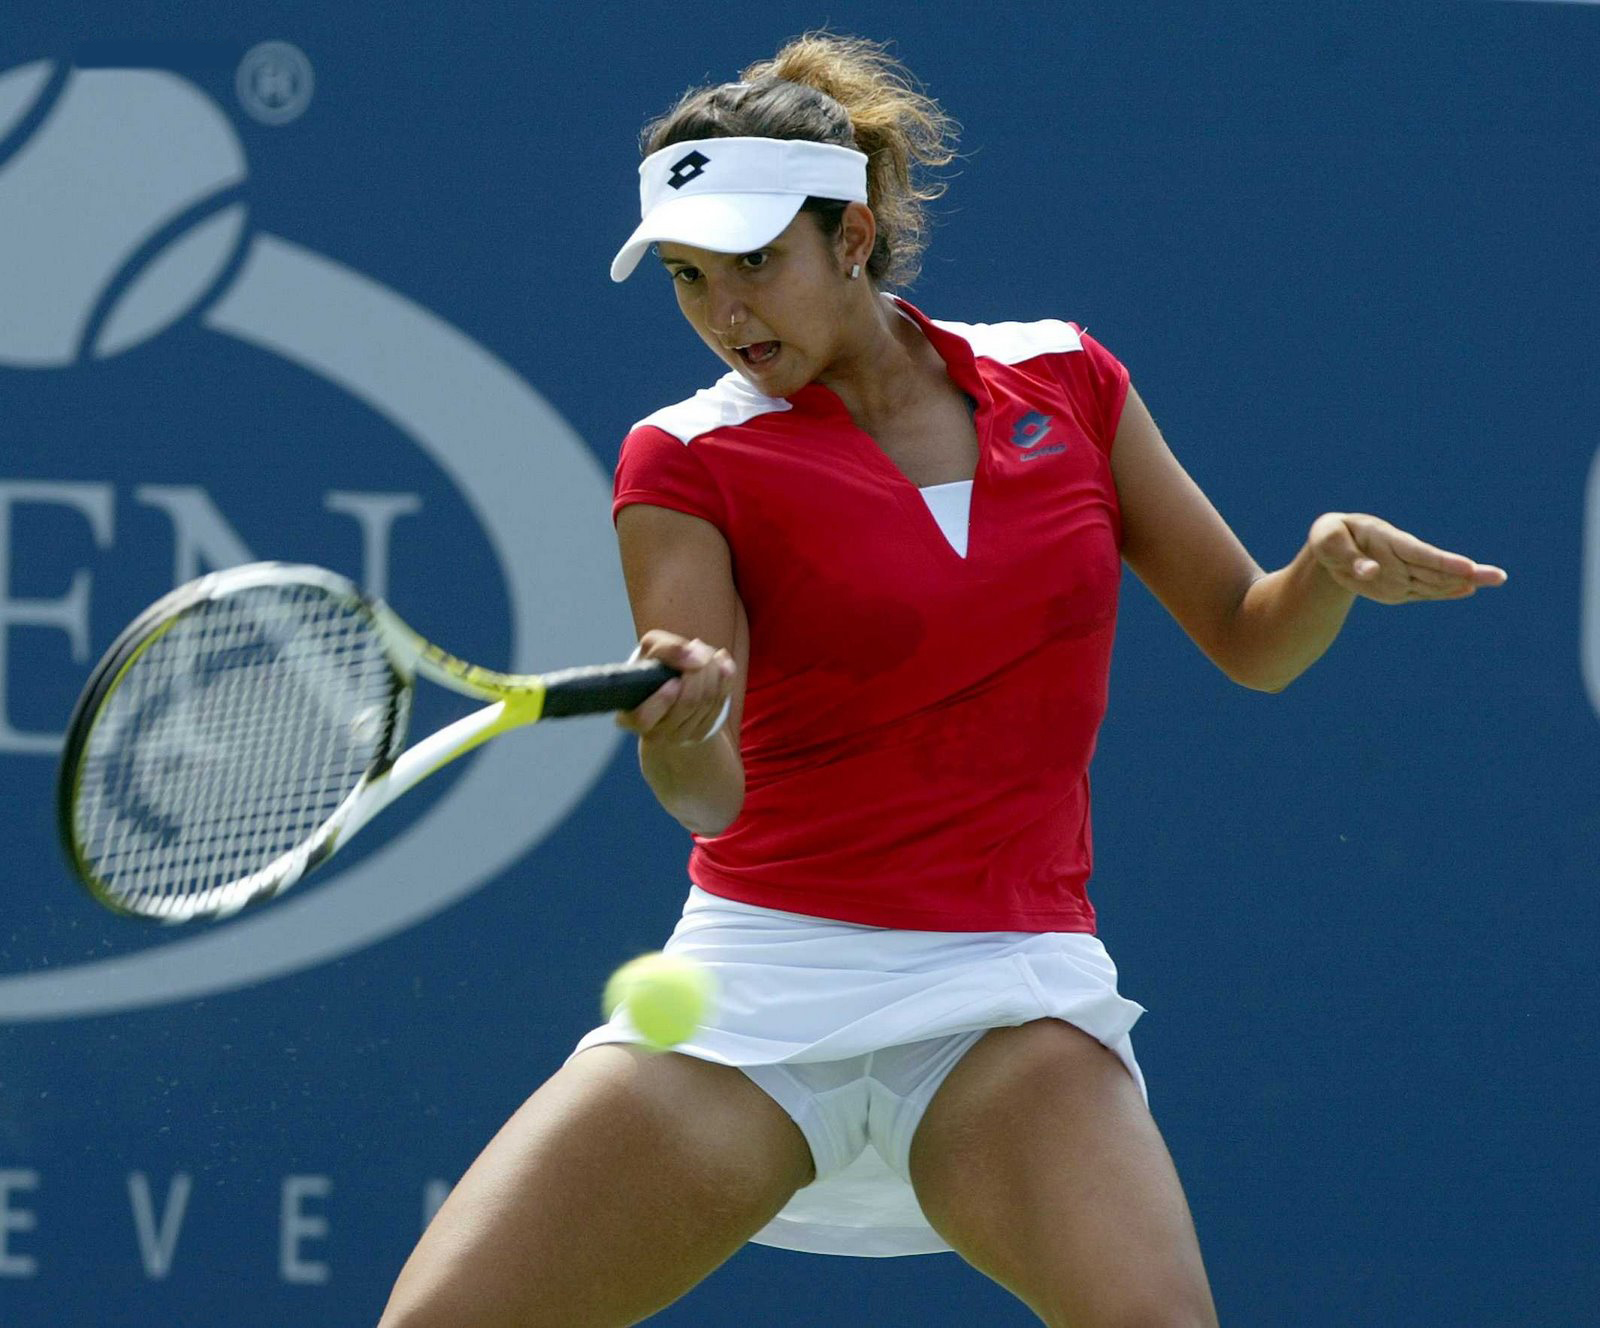 All Tennis Players Hd Wallpapers And Many More...